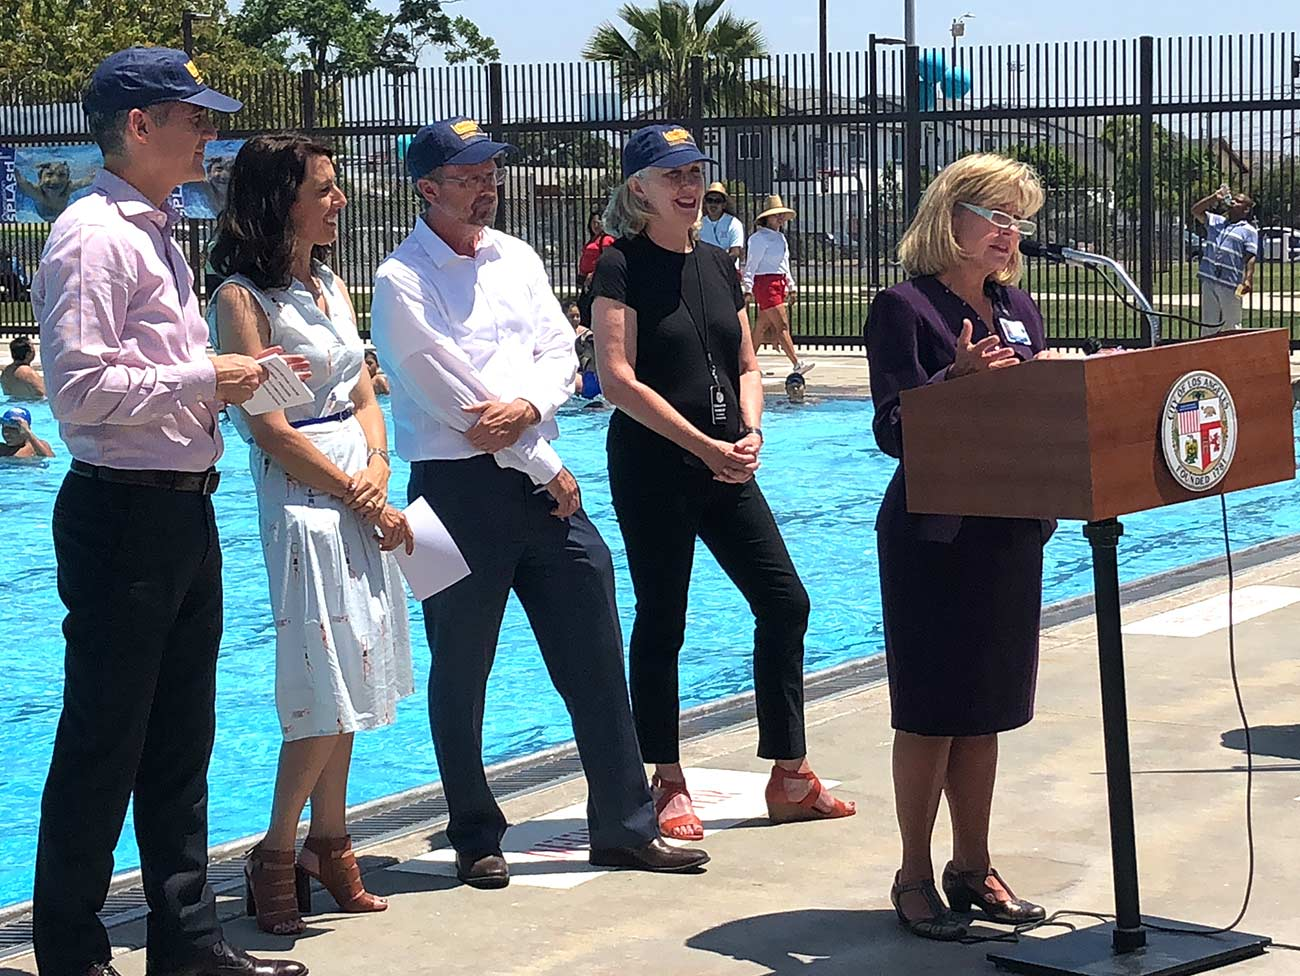 Woman standing at a podium, in front of a swimming pool, with several other people next to her listening to her speaking.